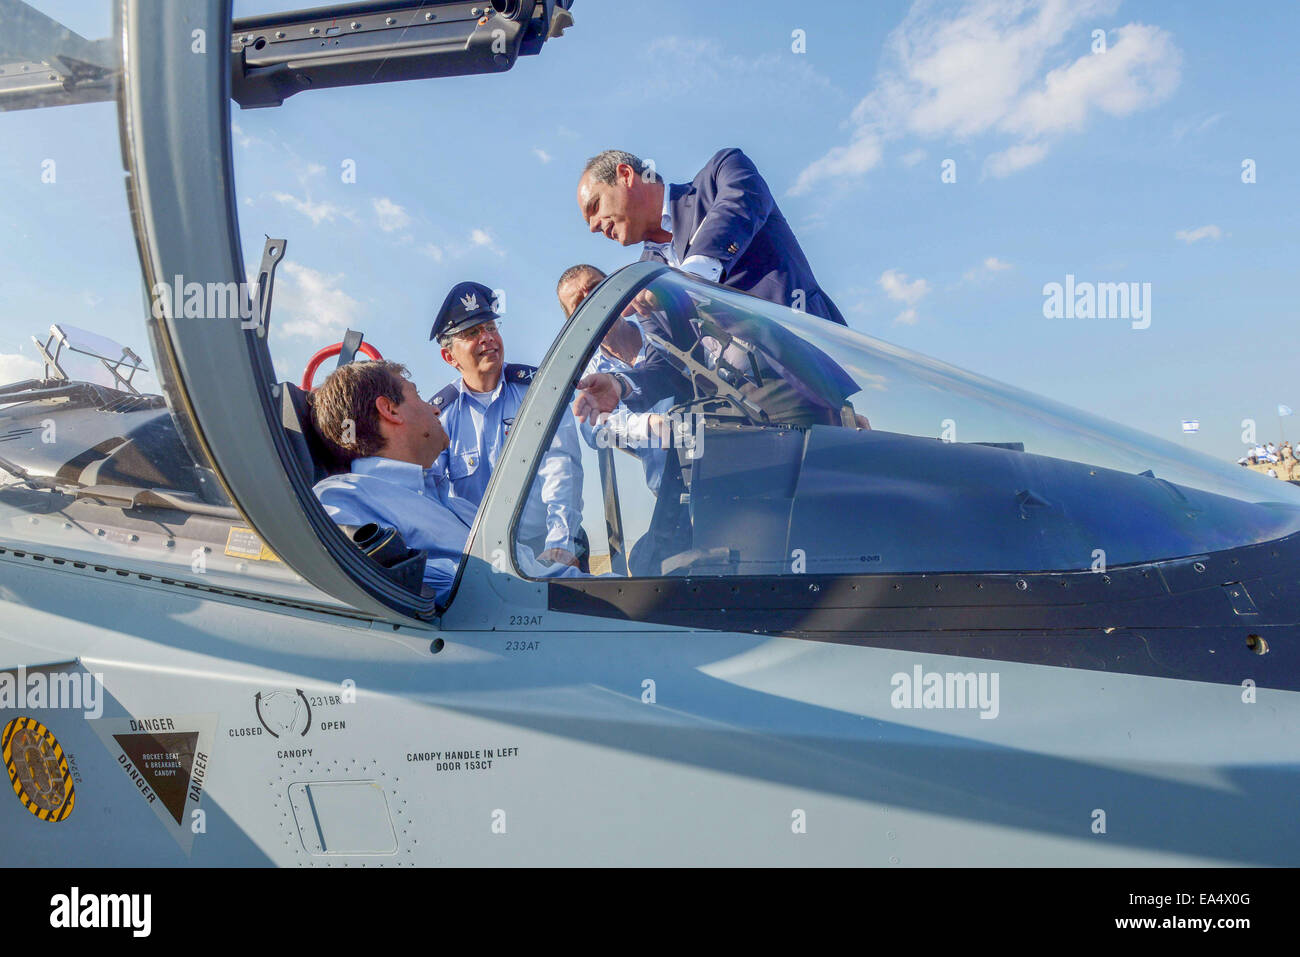 Jerusalem, Israel. 6th Nov, 2014. The Israeli Air Force new Lavi training aircraft is seen during a training flight - Stock Image